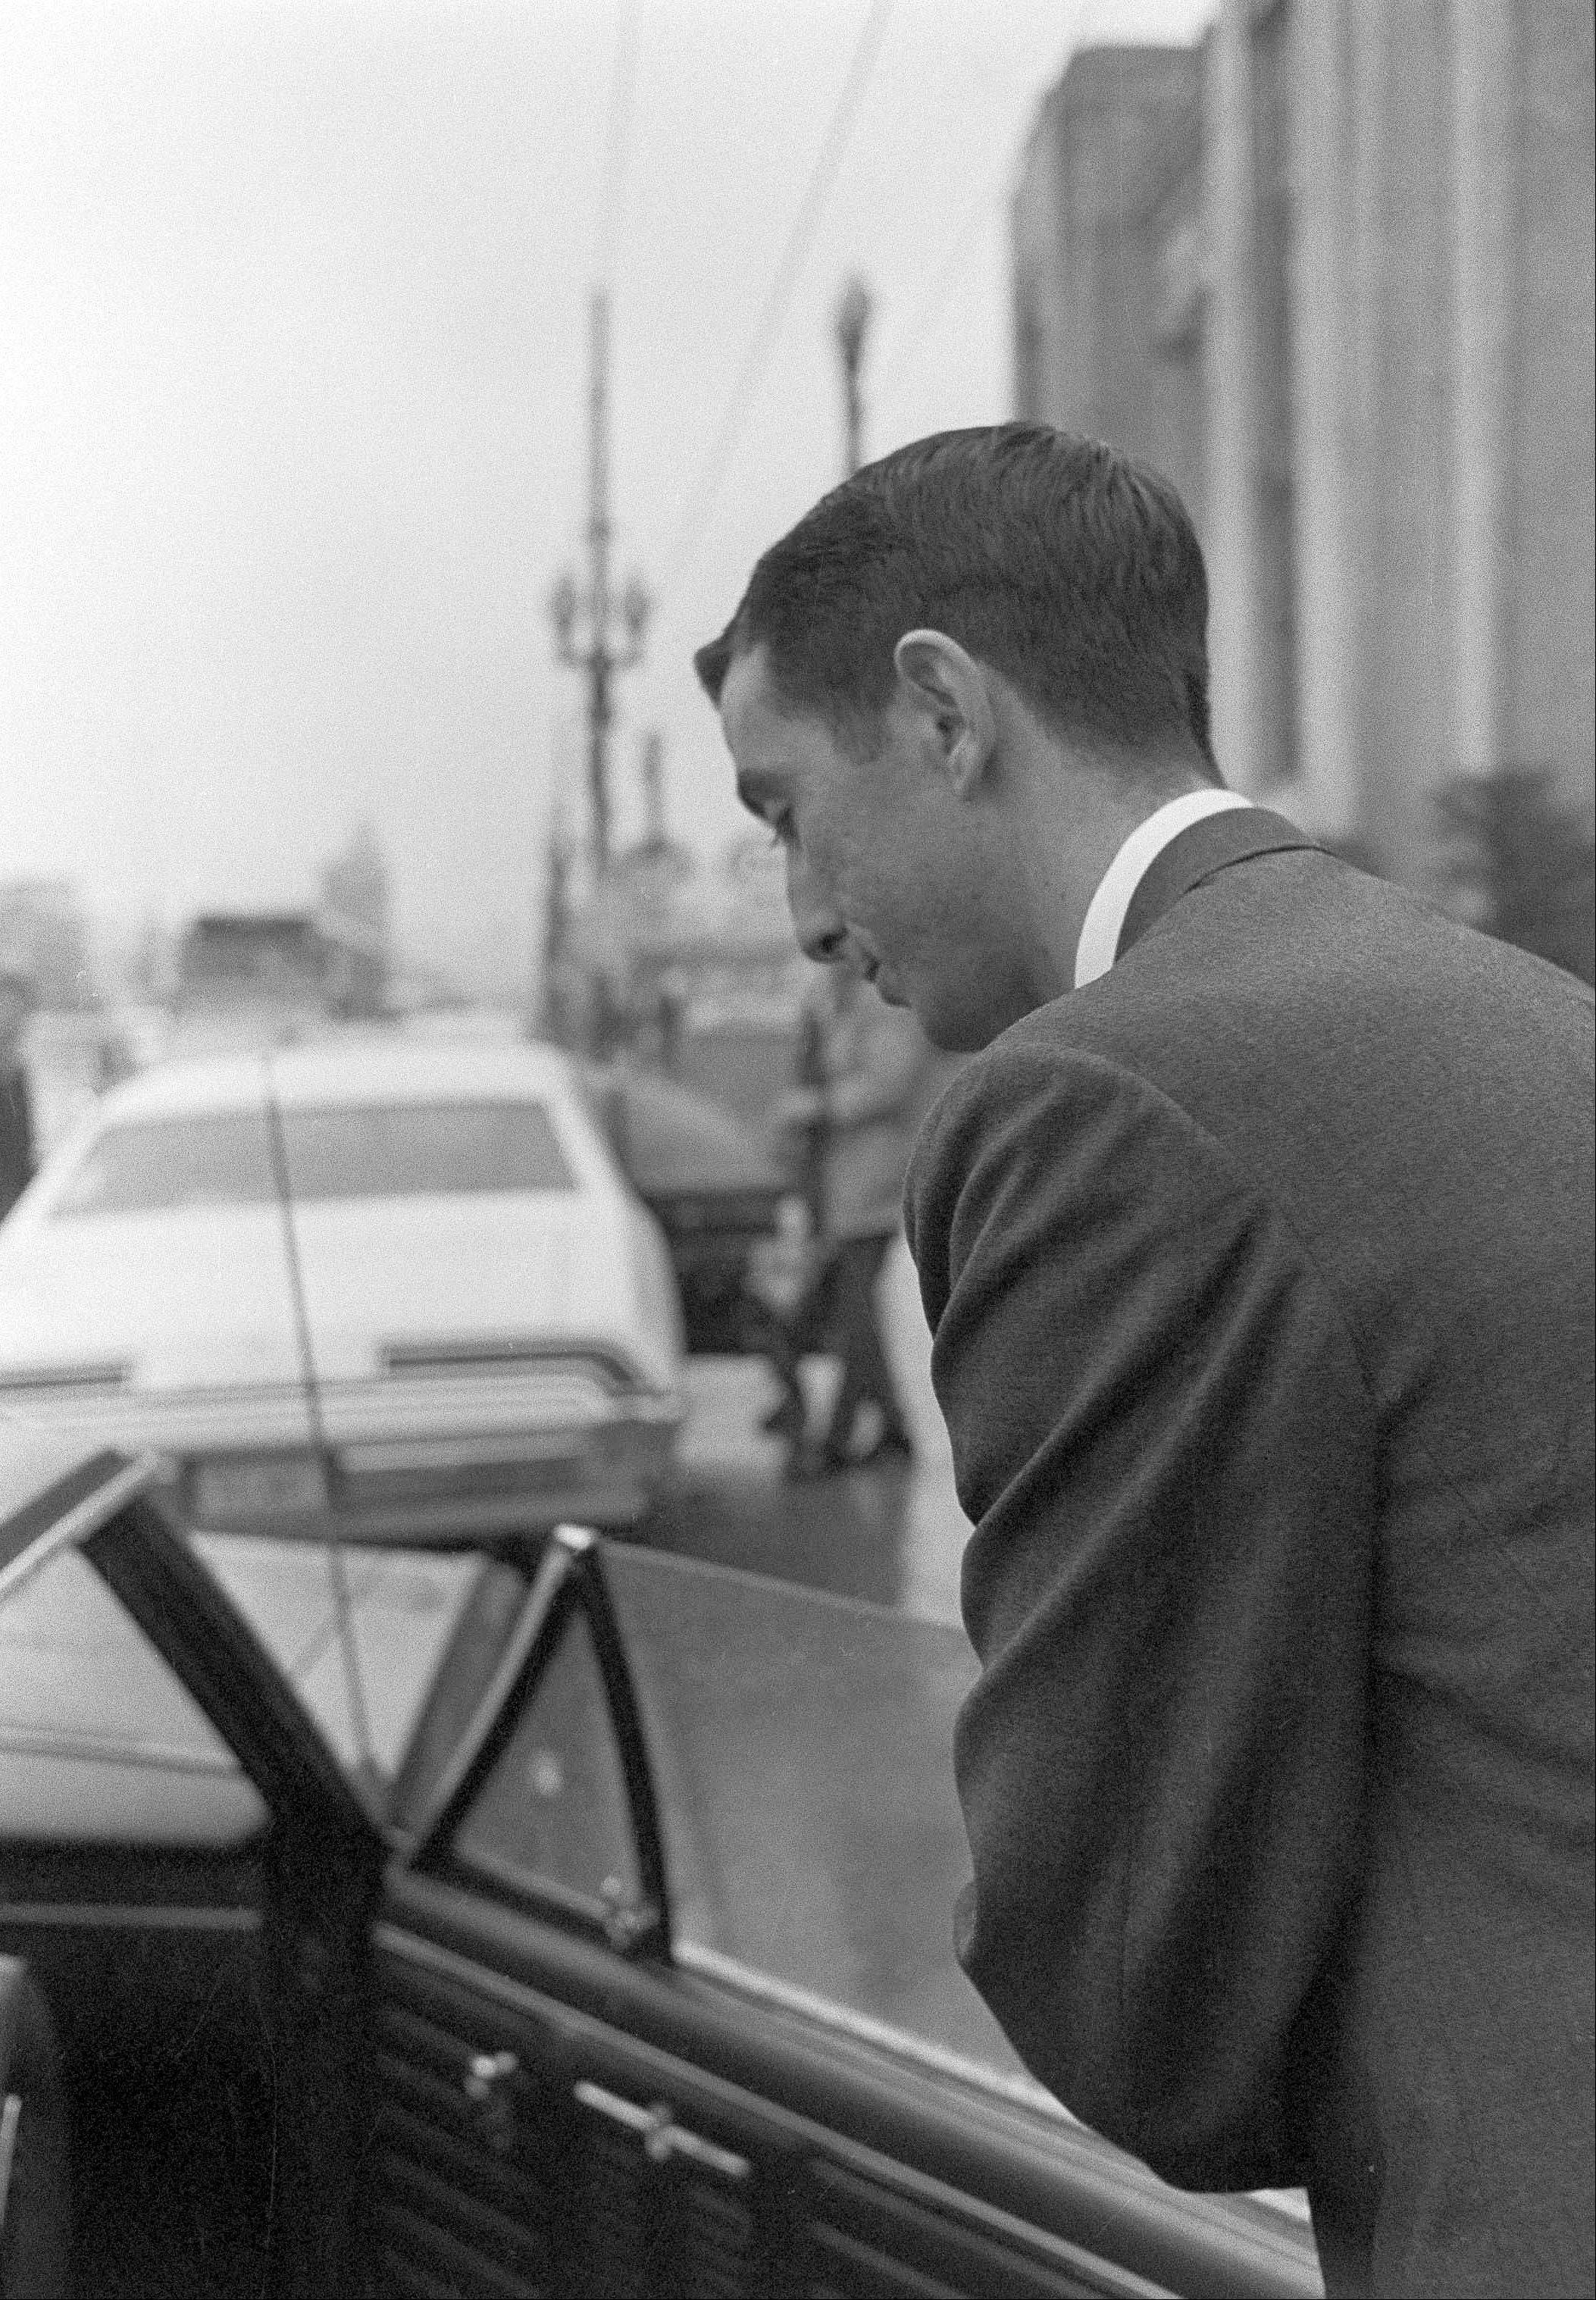 Buell Wesley Frazier of Irving, Texas, a co-worker of Lee Harvey Oswald at the Texas School Book Depository in Dallas, leaves court after testifying in the Clay Shaw trial in New Orleans.